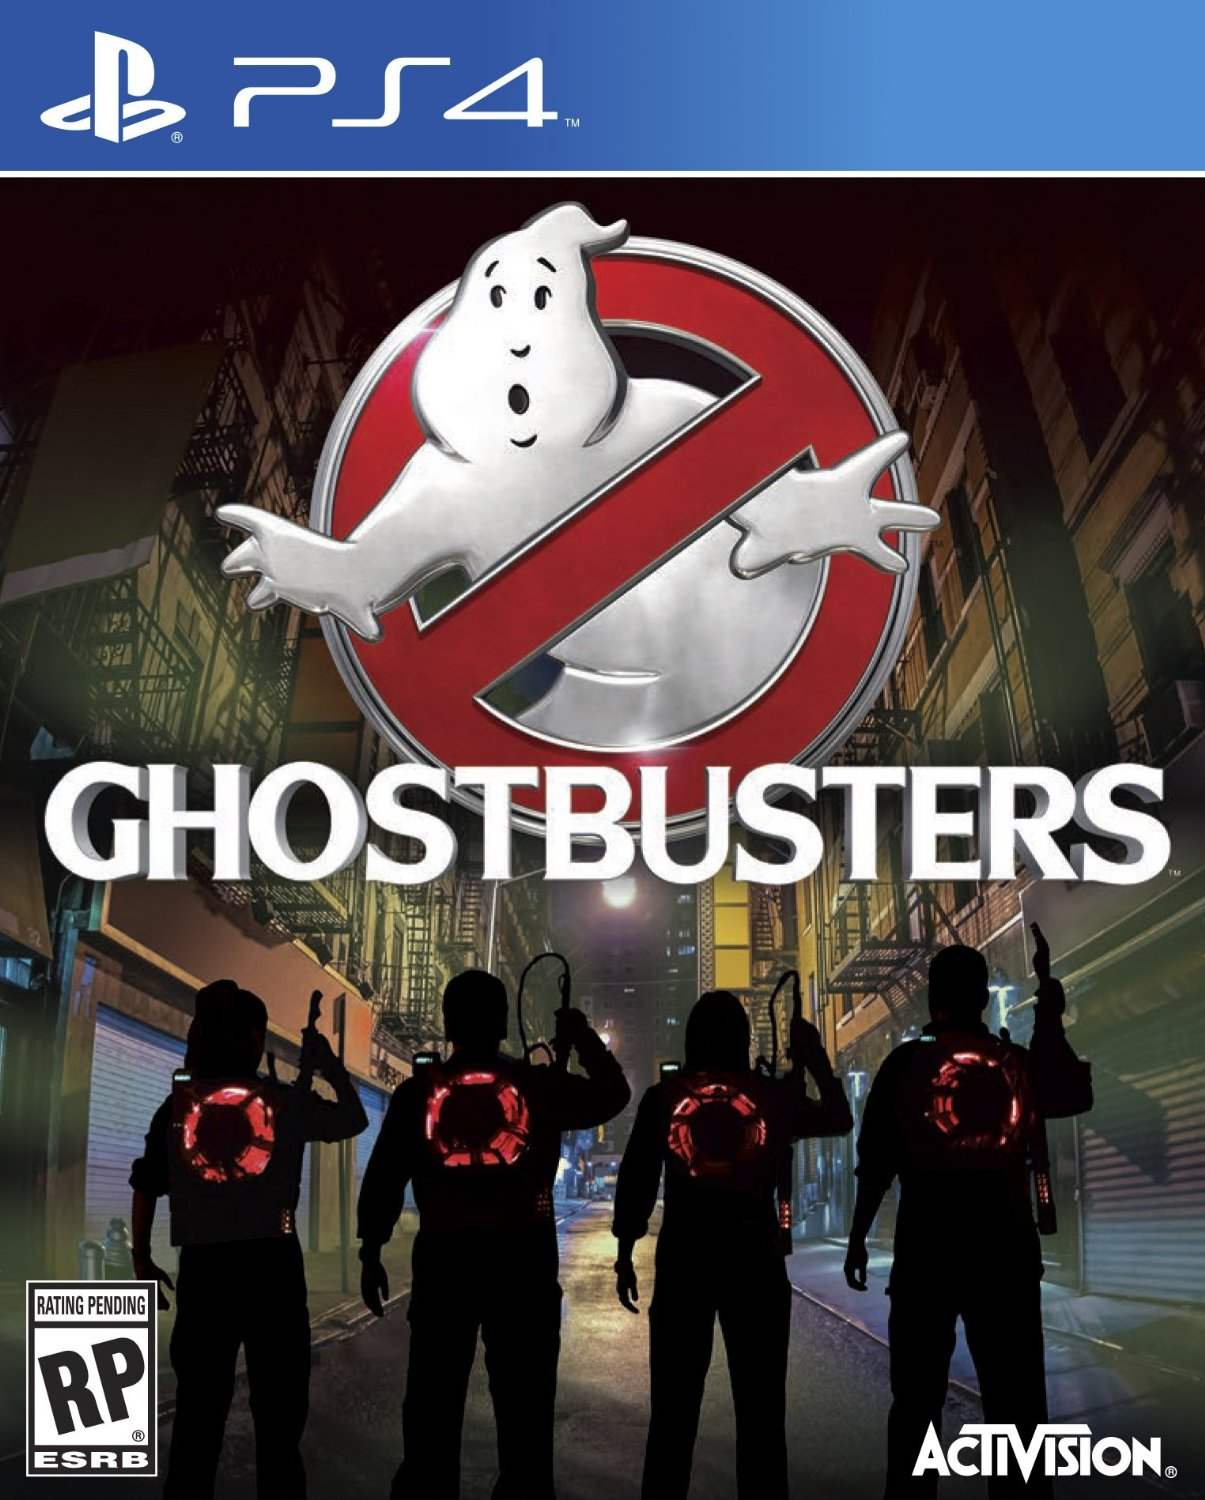 ghostbusters-box-art-01